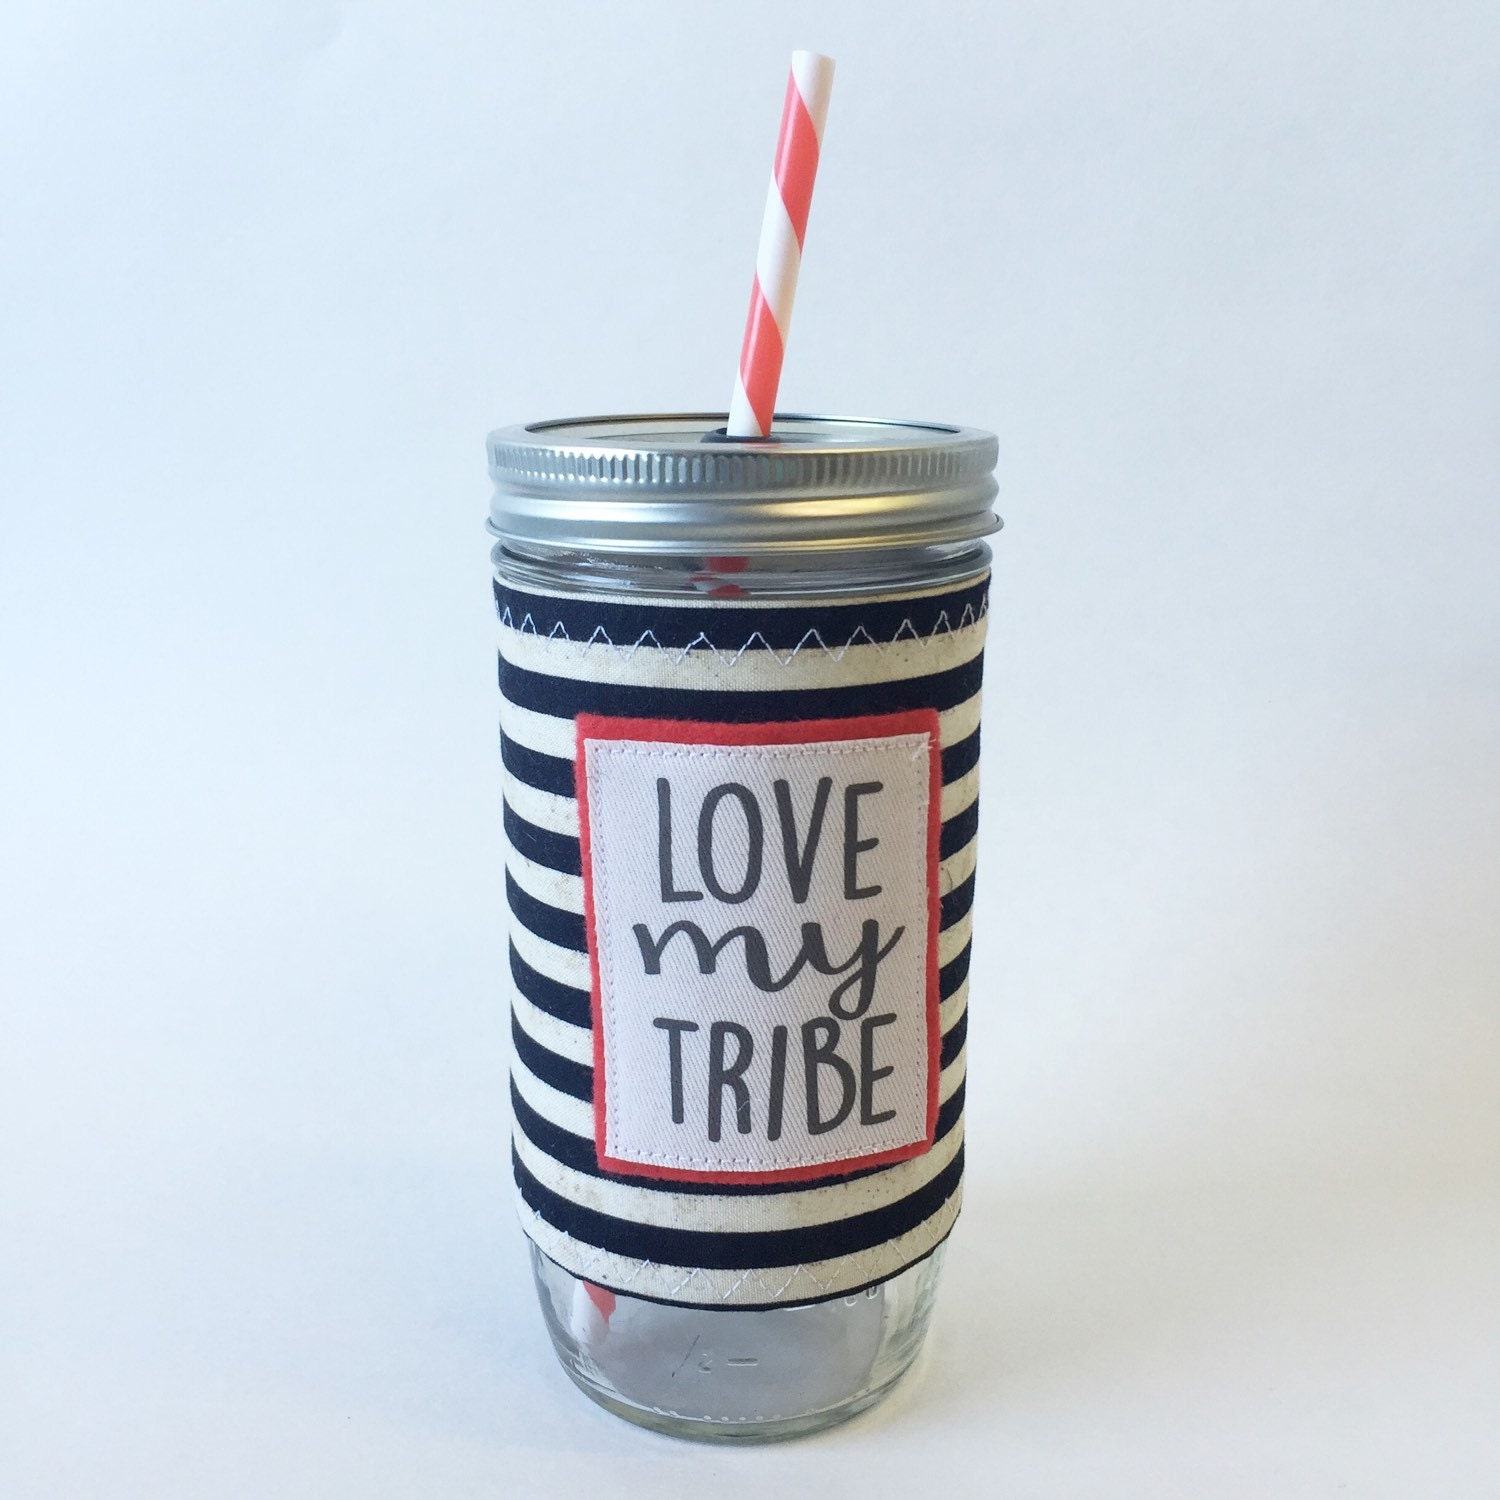 Create Your Own Insulated Mason Jar Sleeve with Quote and Straw